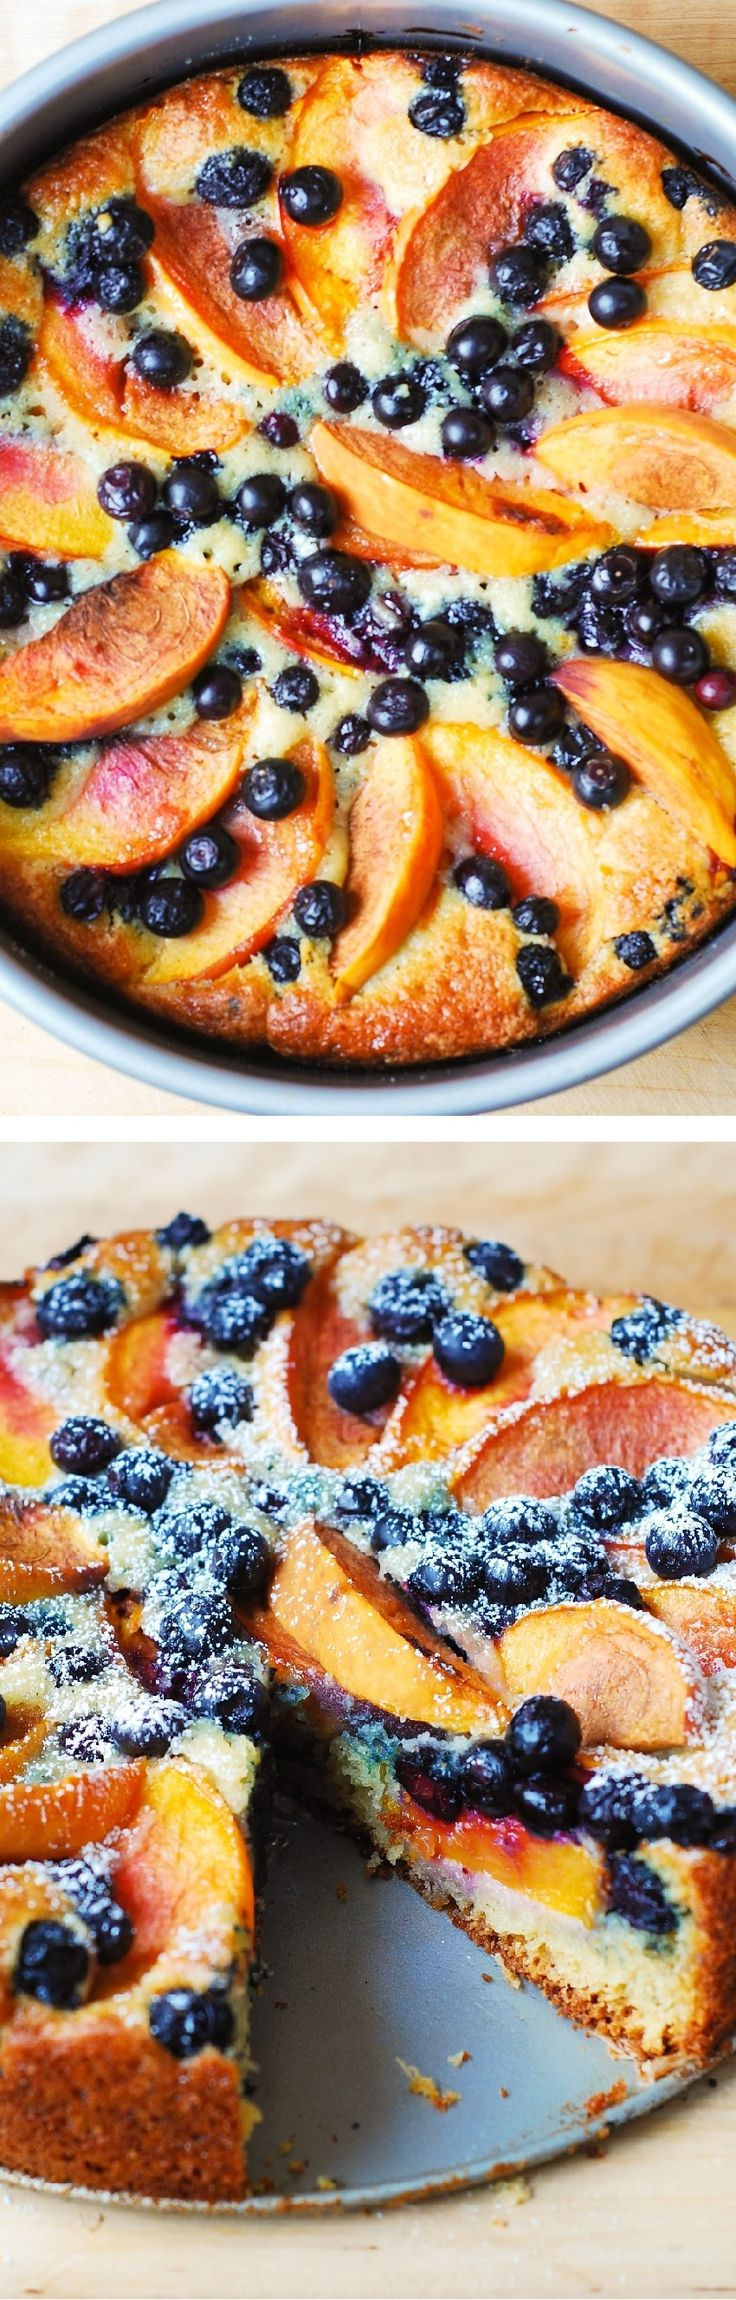 Delicious, light and fluffy Peach Blueberry Greek Yogurt Cake made in a springform baking pan. Greek yogurt gives cake a richer texture! JuliasAlbum.com  #berries #fruit #dessert